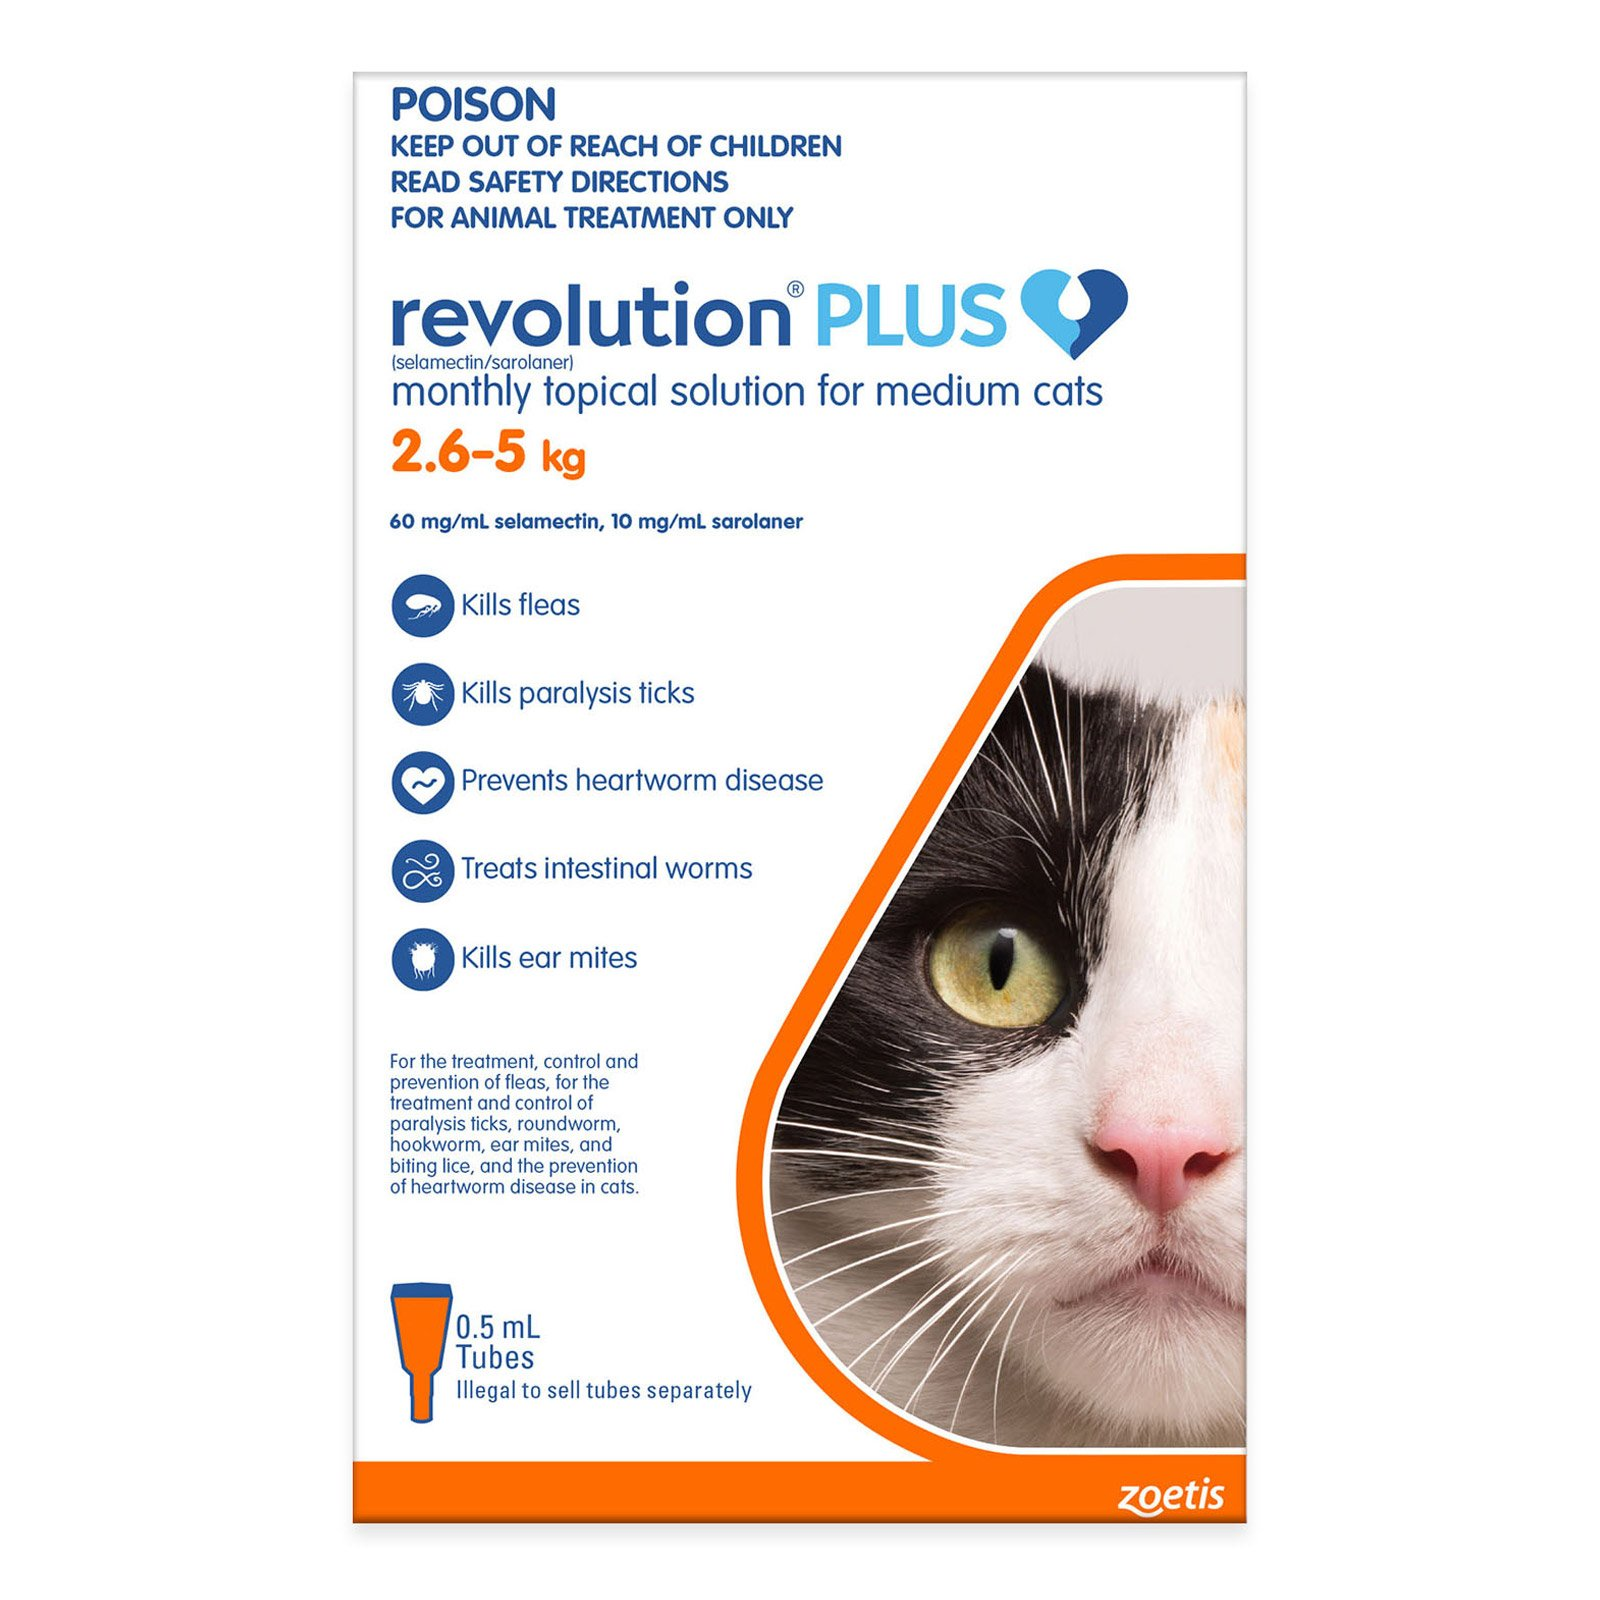 637037199048260162Revolution-plus-for-medium-cats-2.6-5kg-orange.jpg